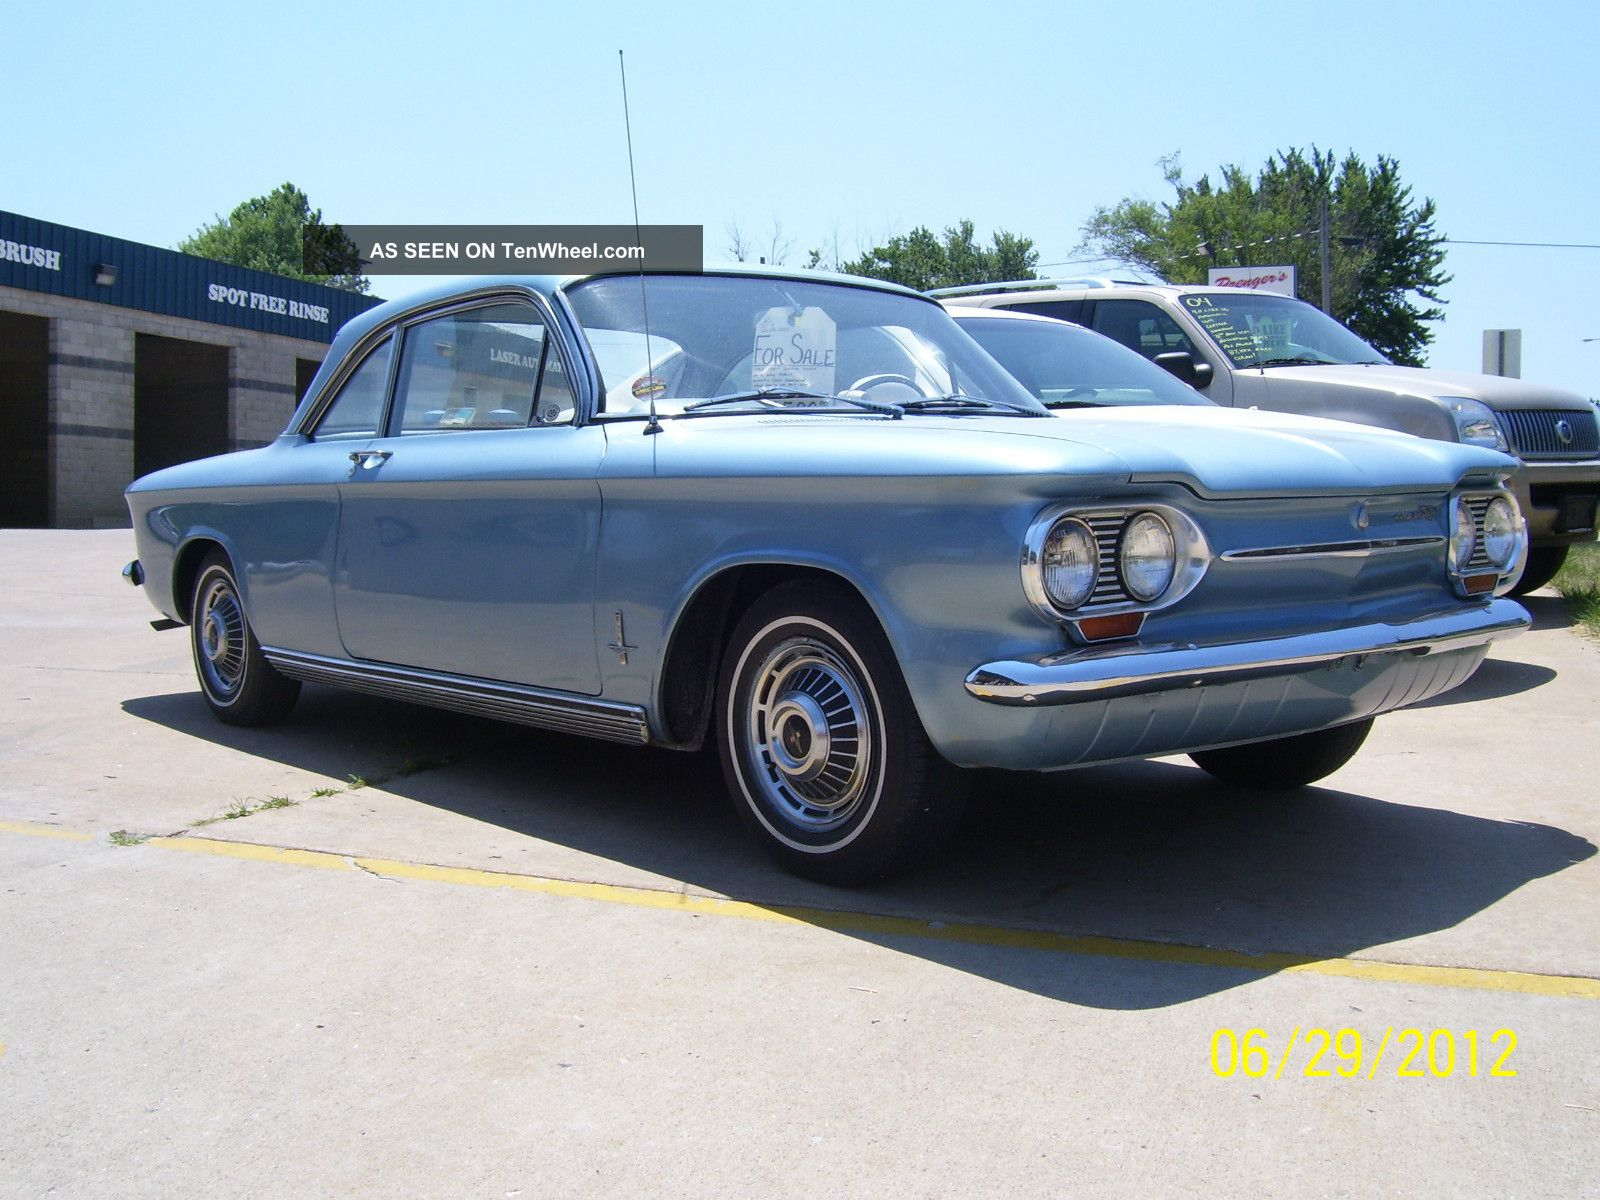 1963 Chevy Corvair Monza 900 Series Corvair photo